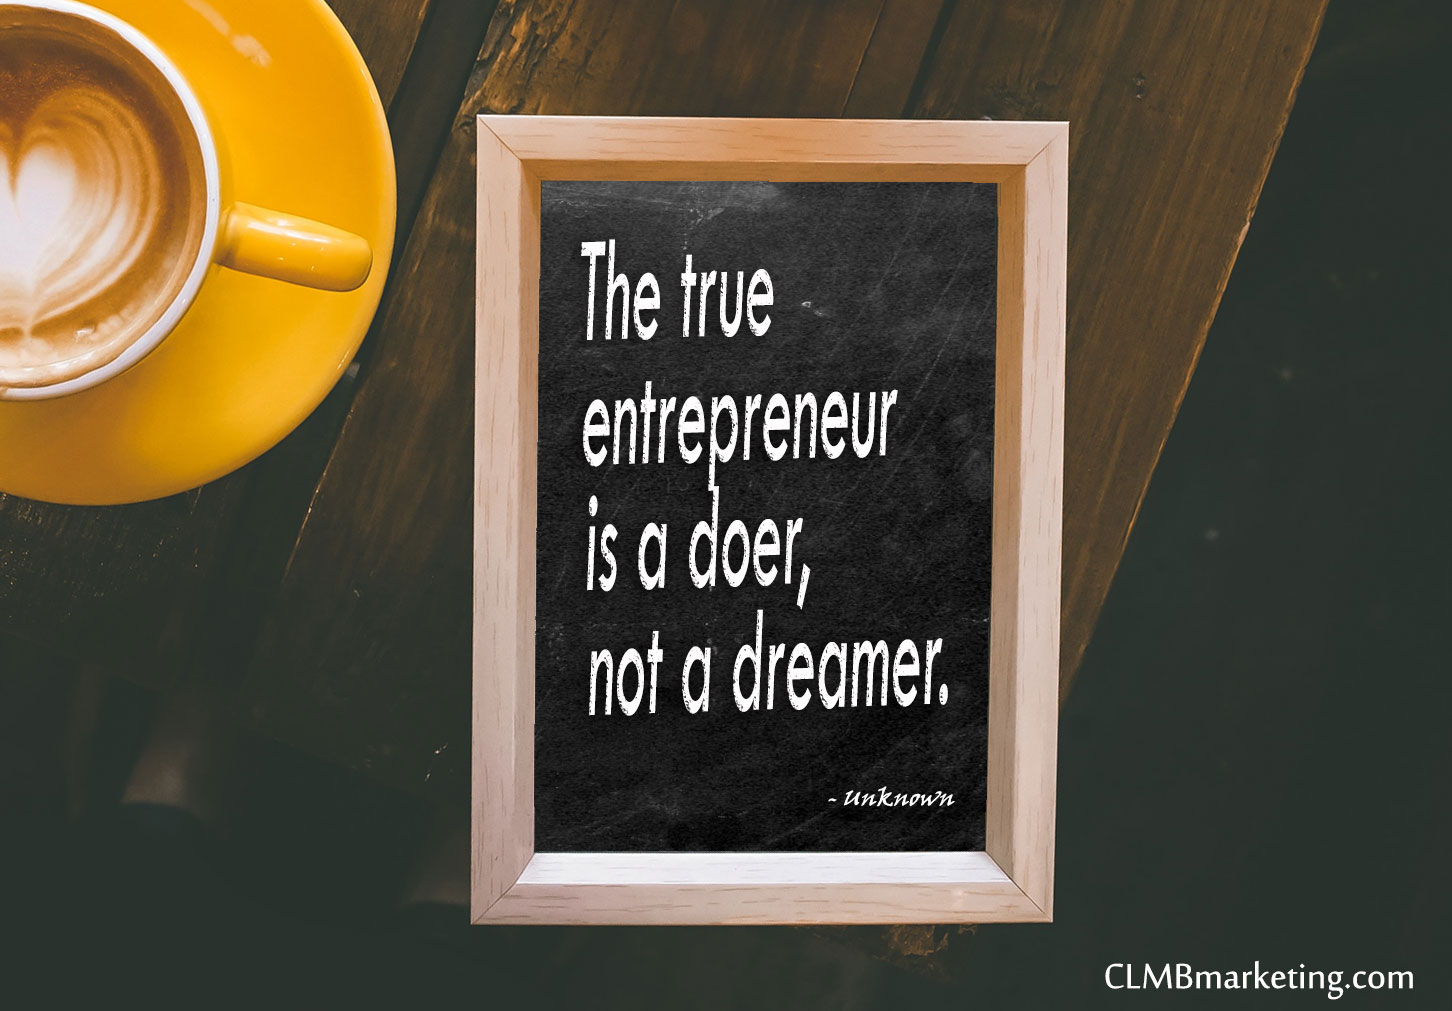 Motivational Business Quotes: The true entrepreneur is a doer, not a dreamer.